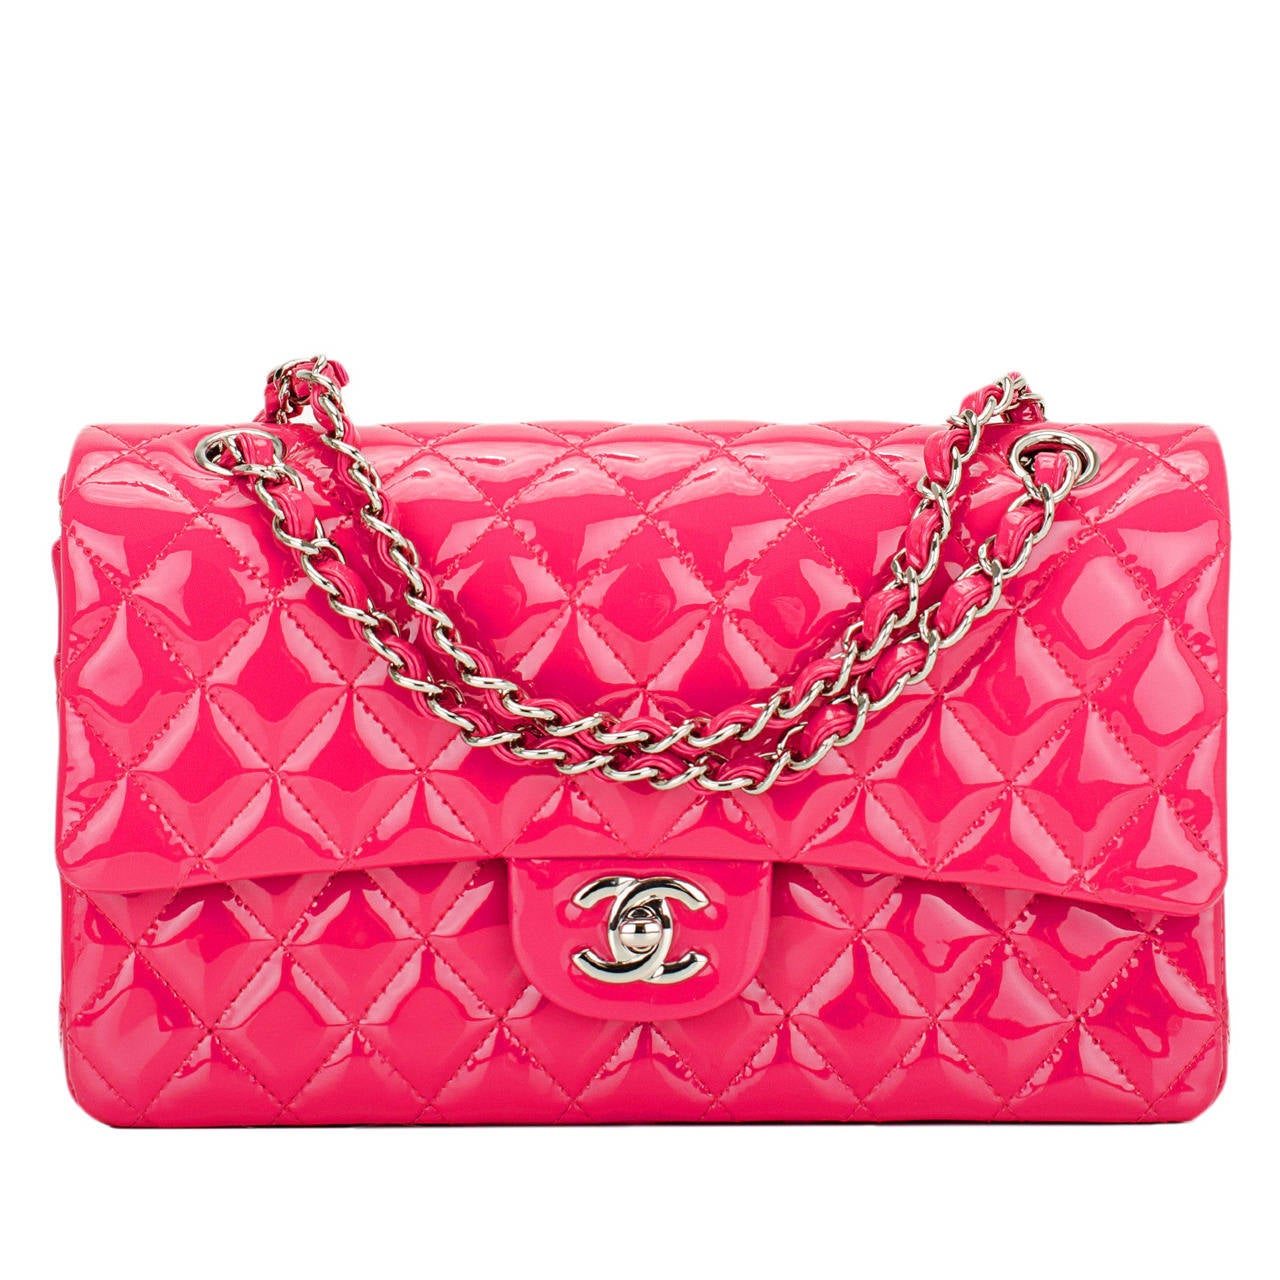 Chanel Pink Quilted Patent Medium Classic Double Flap Bag